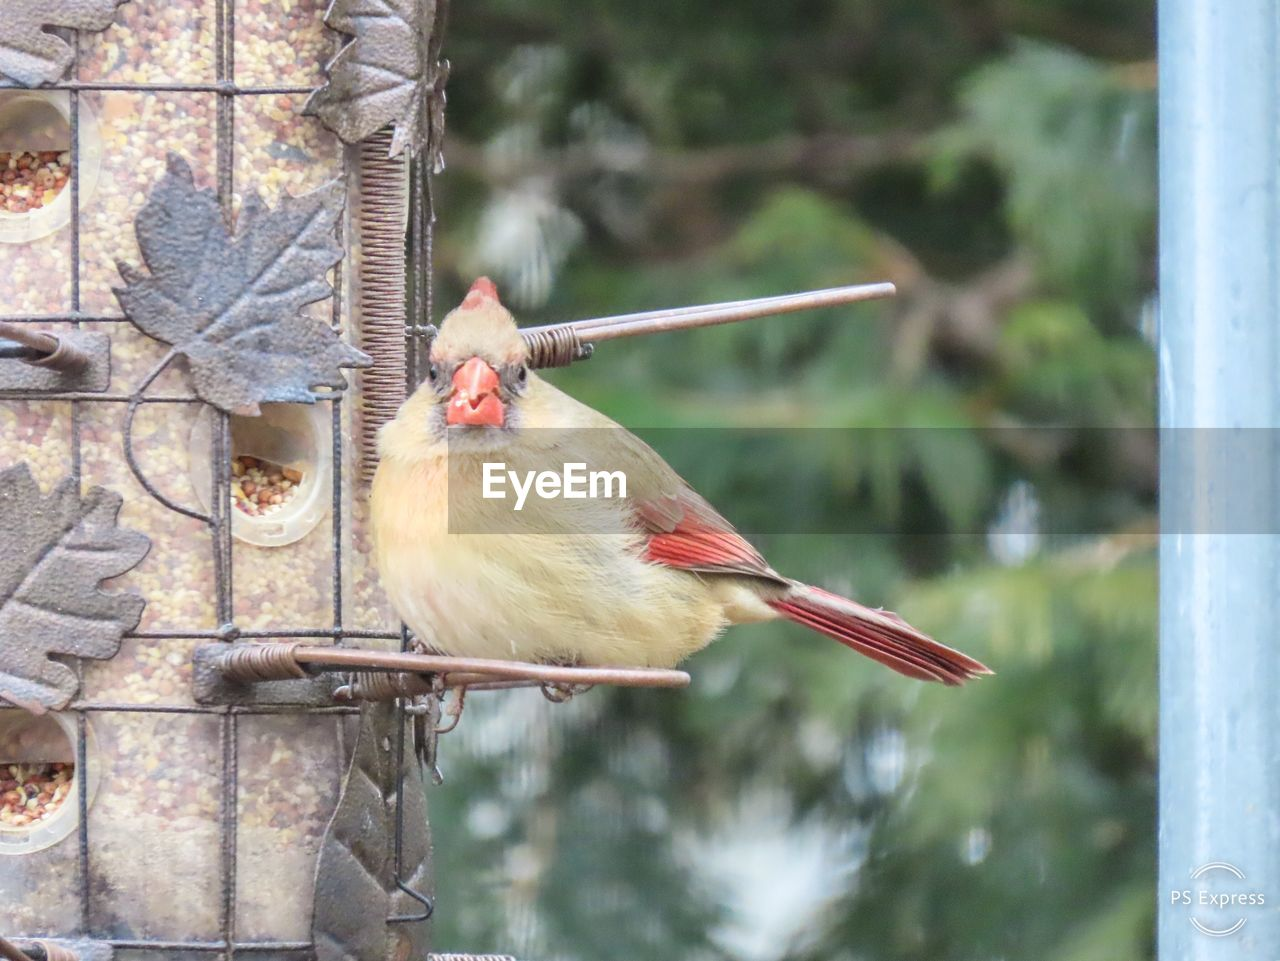 bird, vertebrate, animal themes, animal, animal wildlife, focus on foreground, animals in the wild, one animal, day, perching, no people, bird feeder, tree, nature, outdoors, close-up, plant, architecture, hanging, red